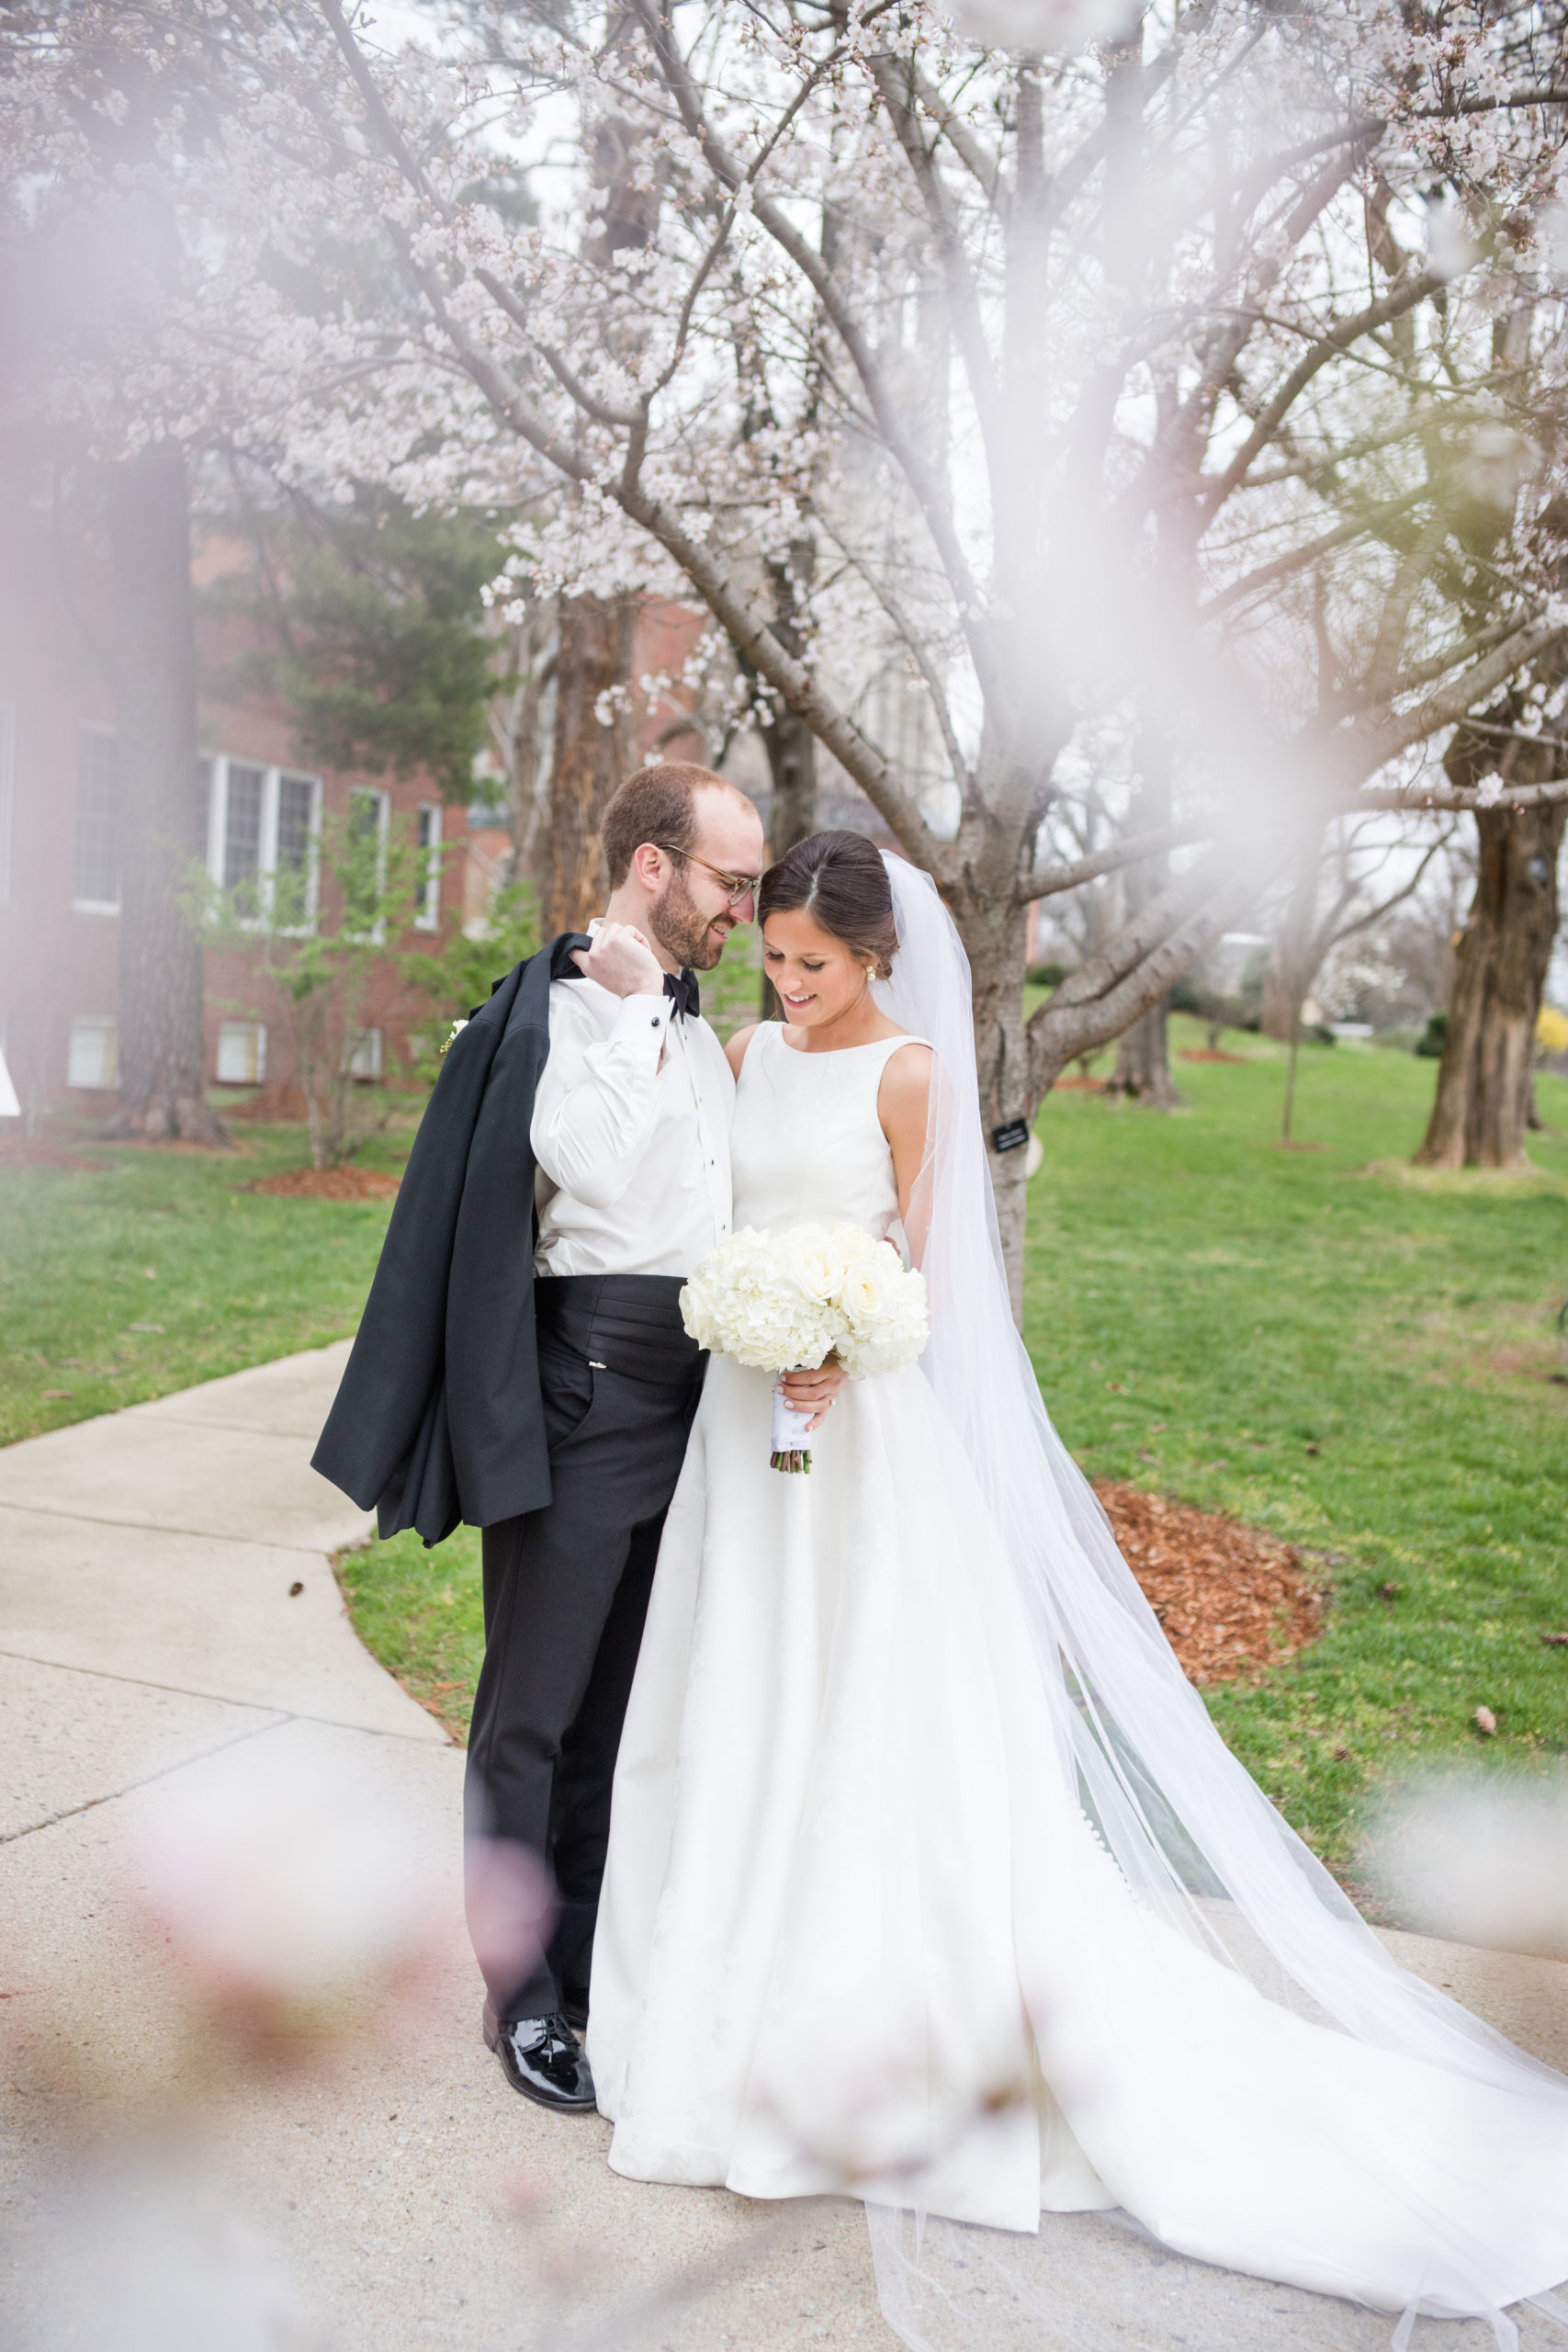 Spring Wedding at Belle Meade Country Club in Nashville, Tennessee by Sweet Williams Photography, a wedding and portrait photographer.